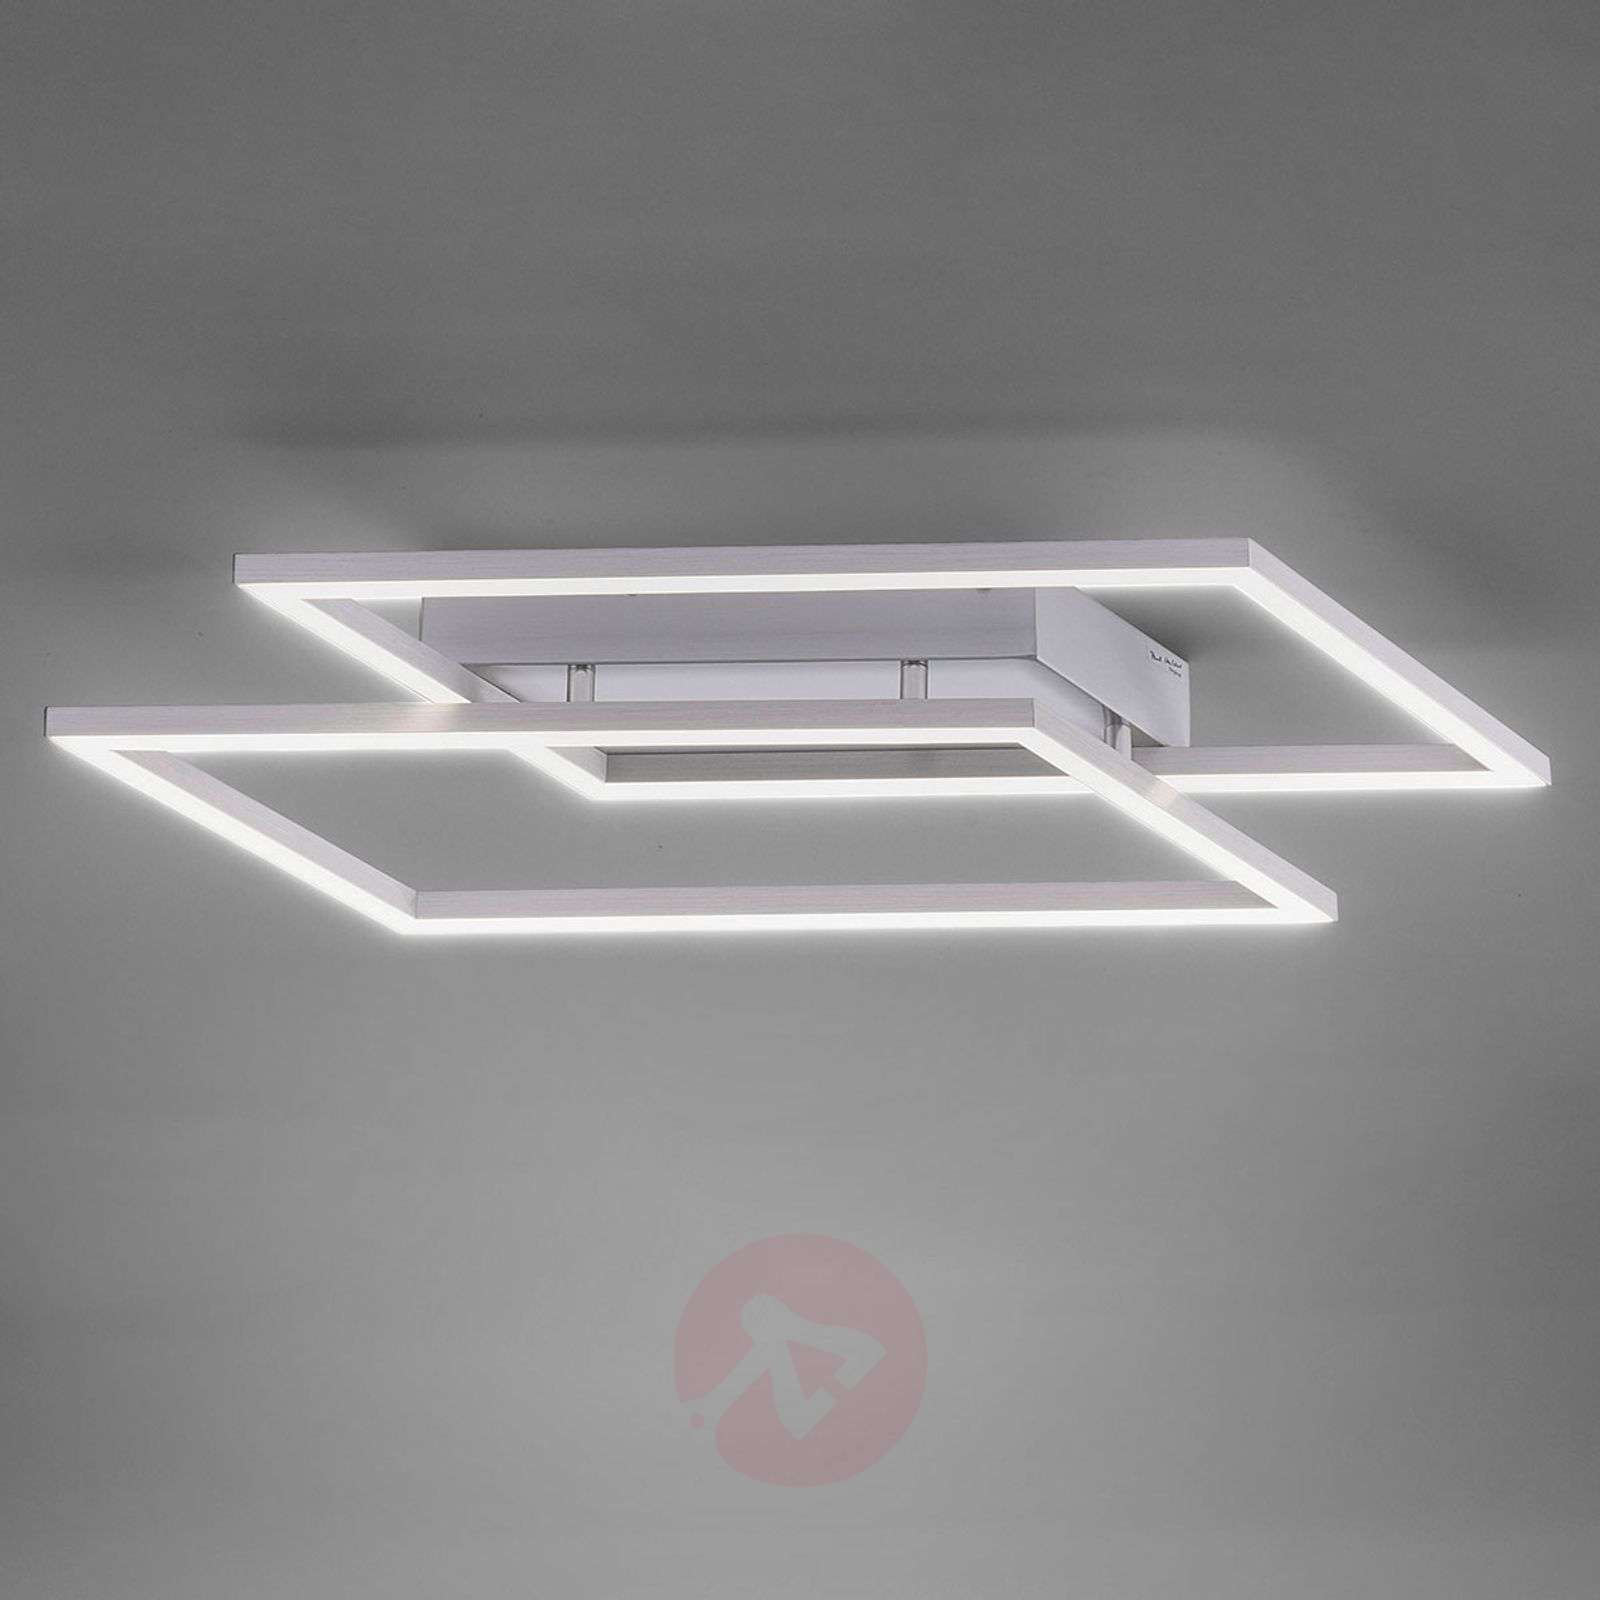 Plafoniere Con Interruttore : Acquista plafoniera led quadra dimmerabile con interruttore